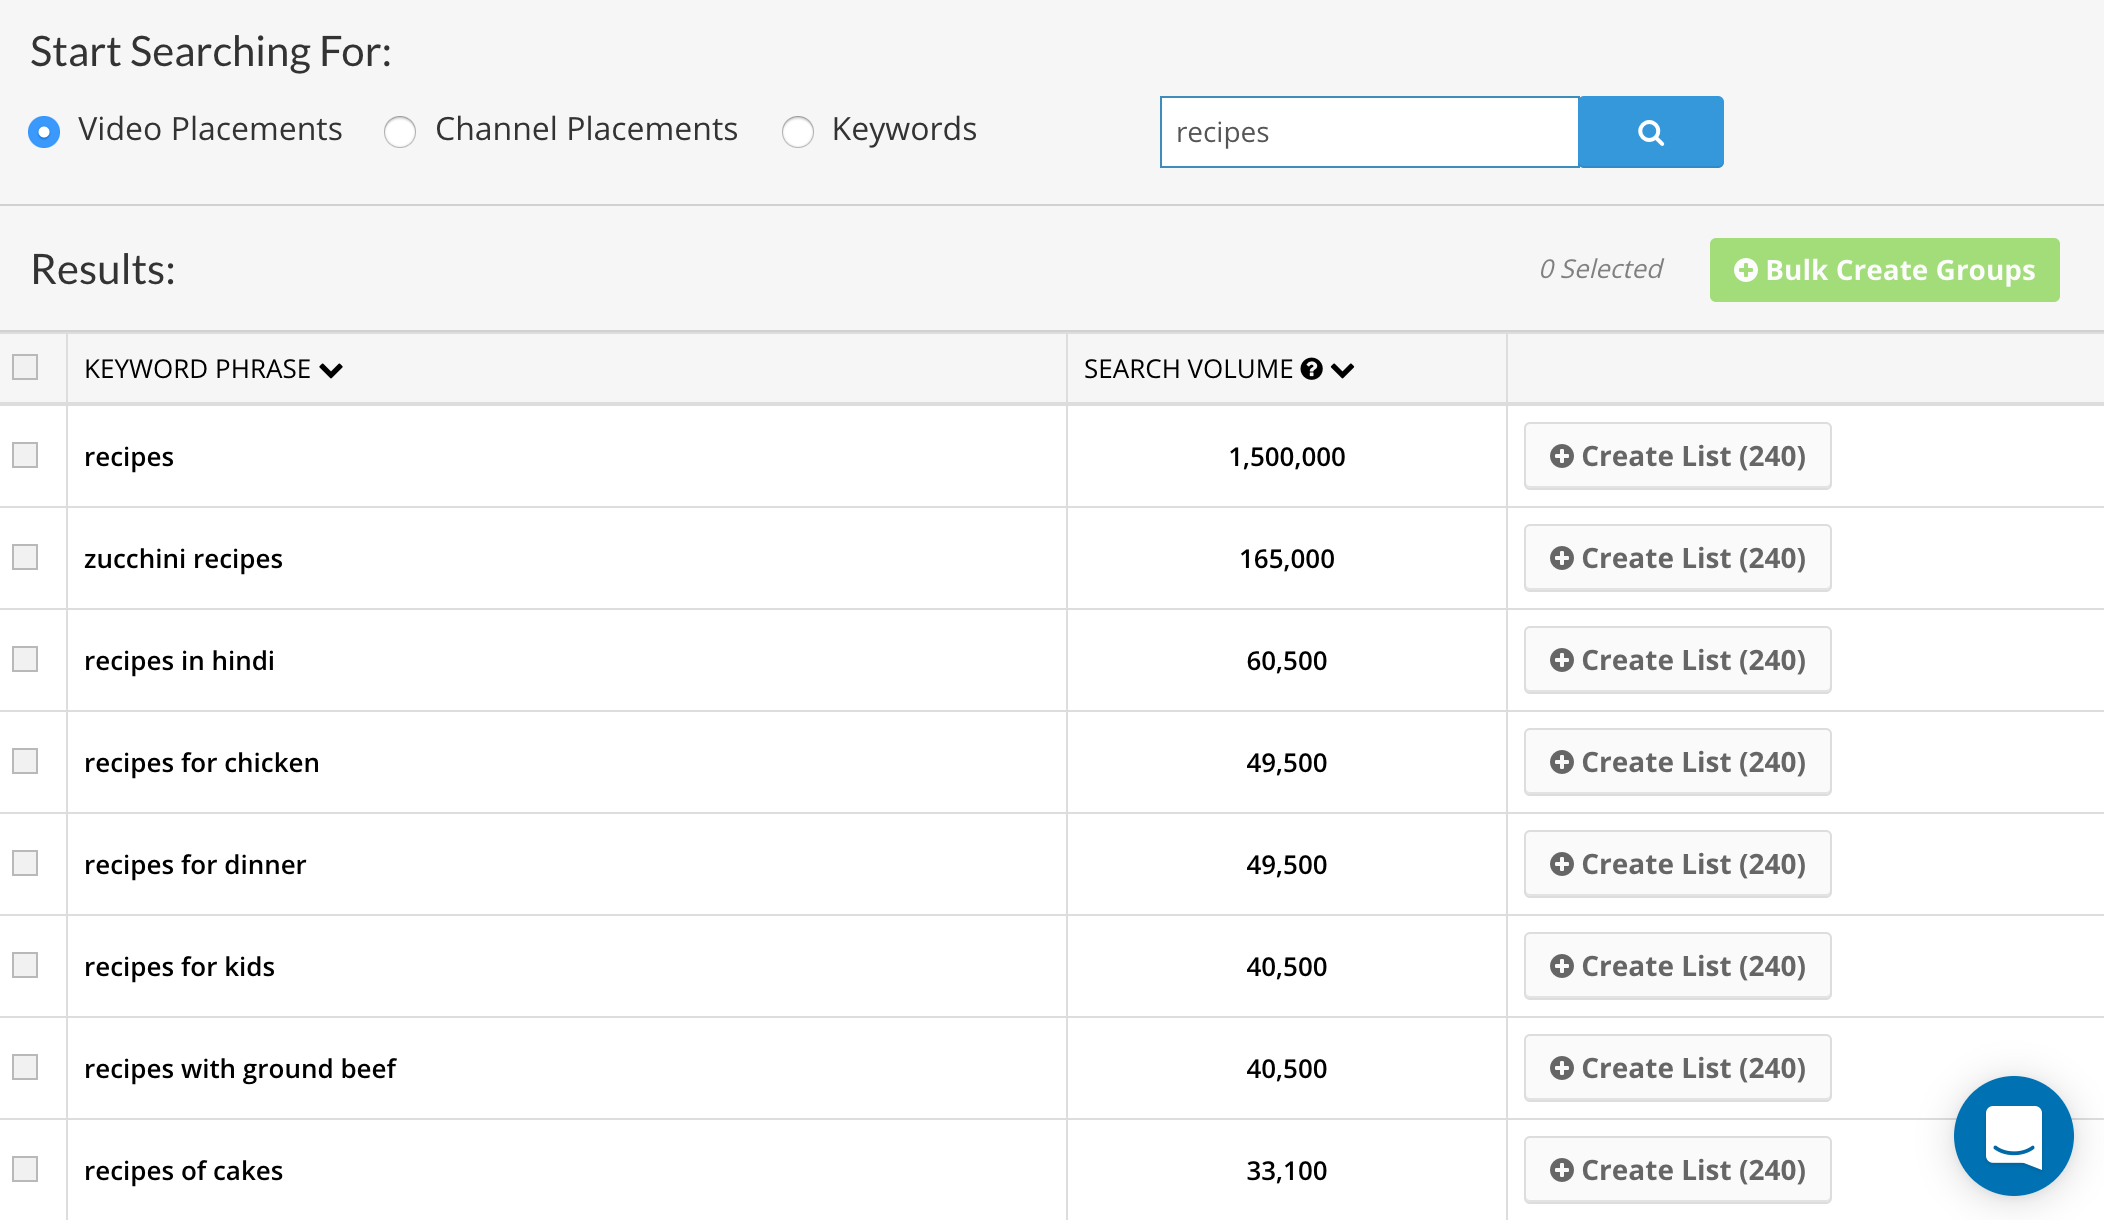 Use our targeting tool to quickly find 1000's of relevant videos to advertise on.